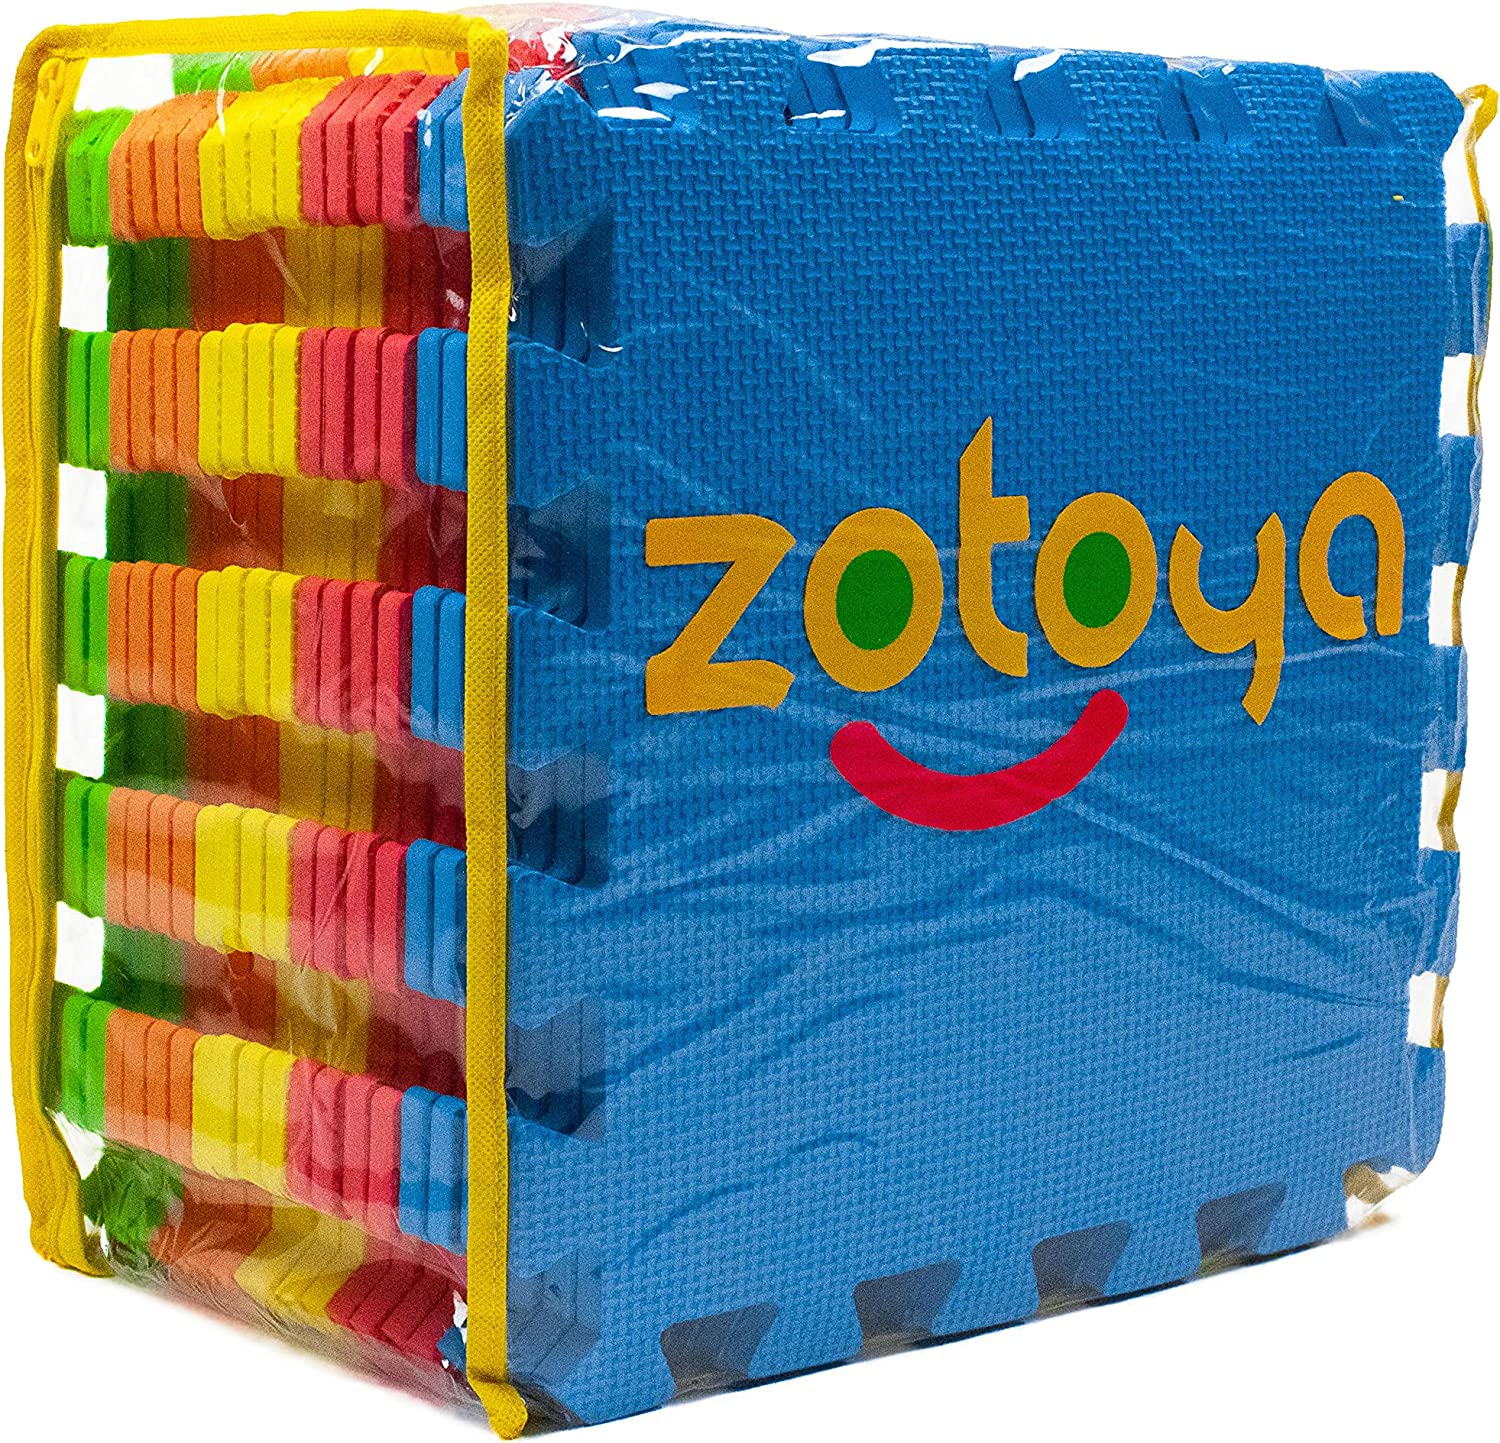 Zotoya EVA Foam Soft Play MatMulti-Colour 20 Piece Set with Carry Bag